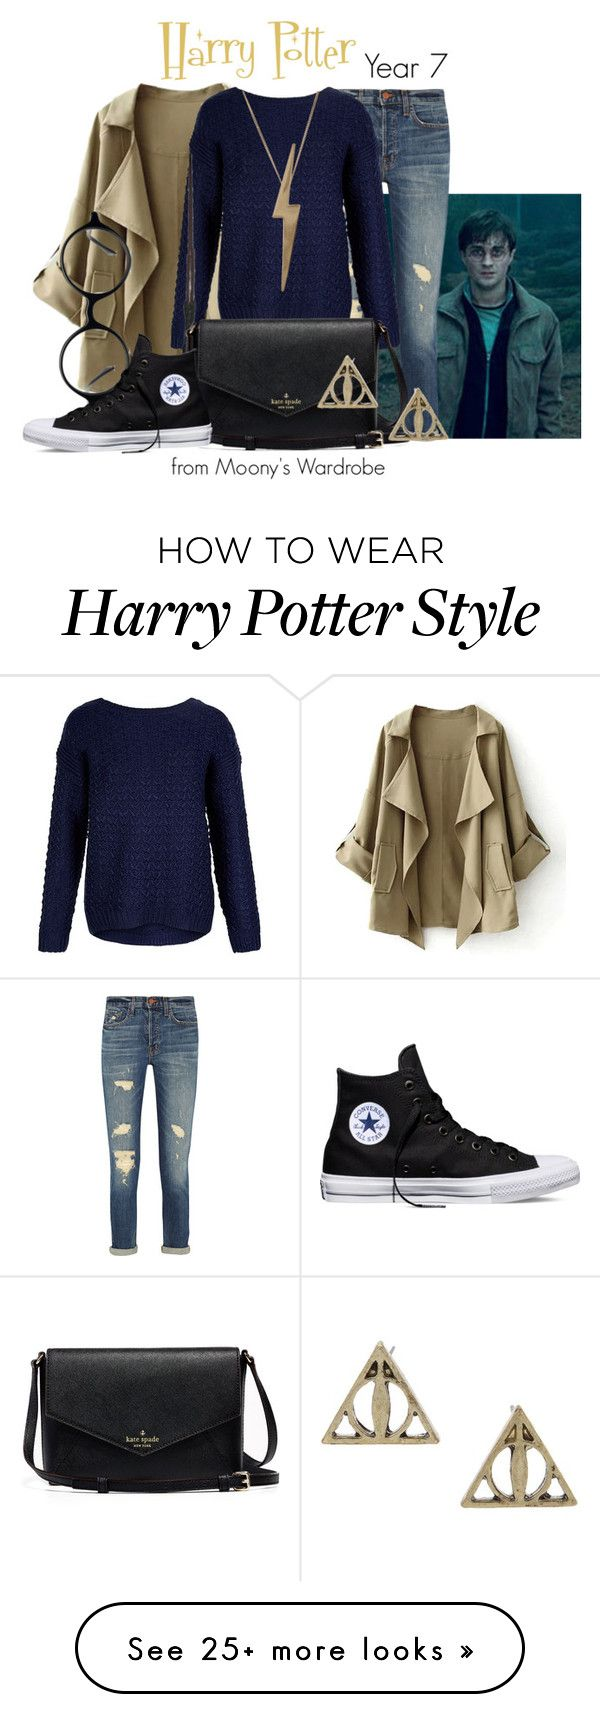 """Harry Potter: Year 7"" by evalupin on Polyvore featuring Radcliffe, J Brand, Edge Only, Muse, Converse, women's clothing, women's fashion, women, female and woman"